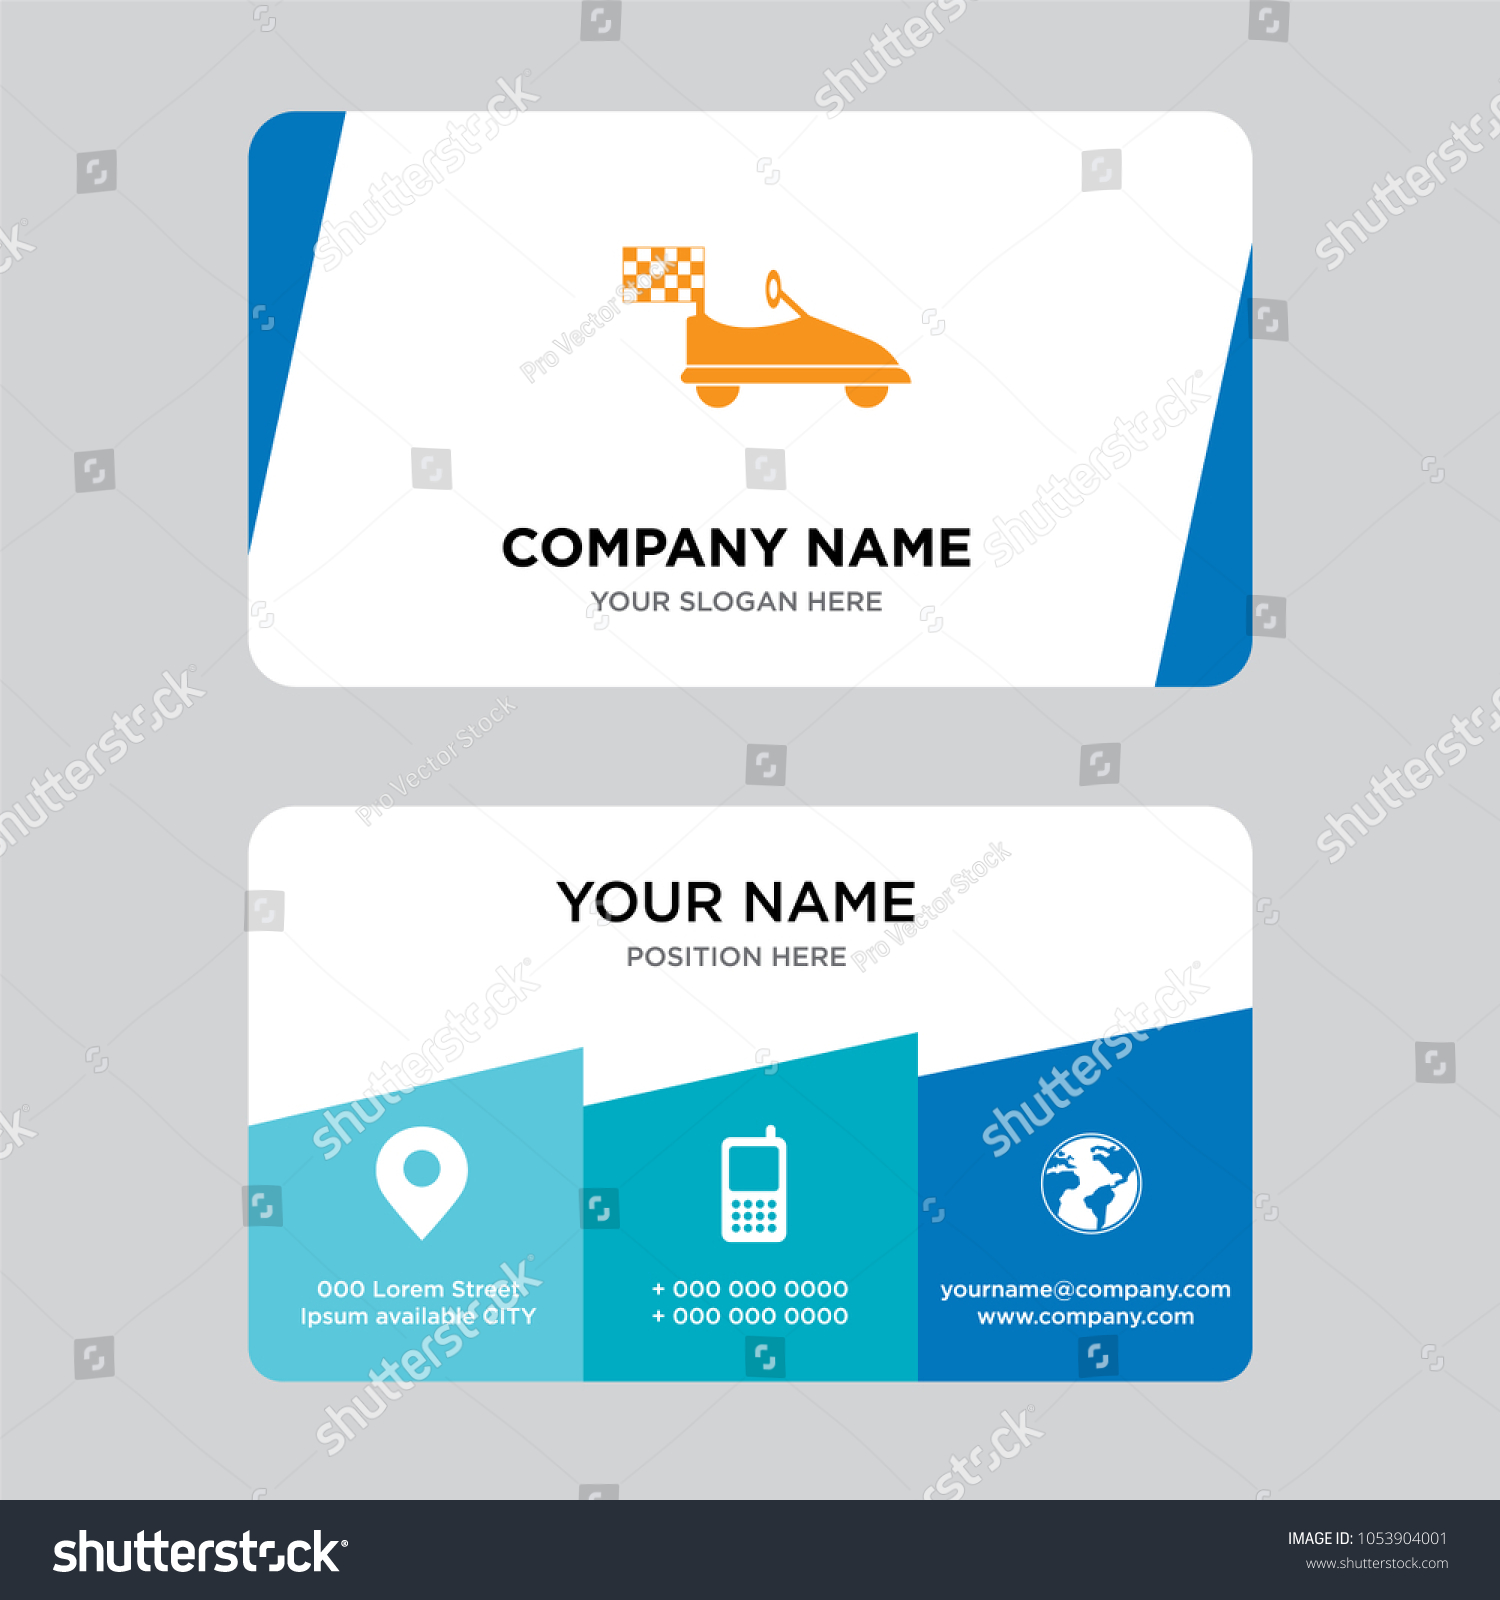 Kart Business Card Design Template Visiting Stock Vector 1053904001 ...